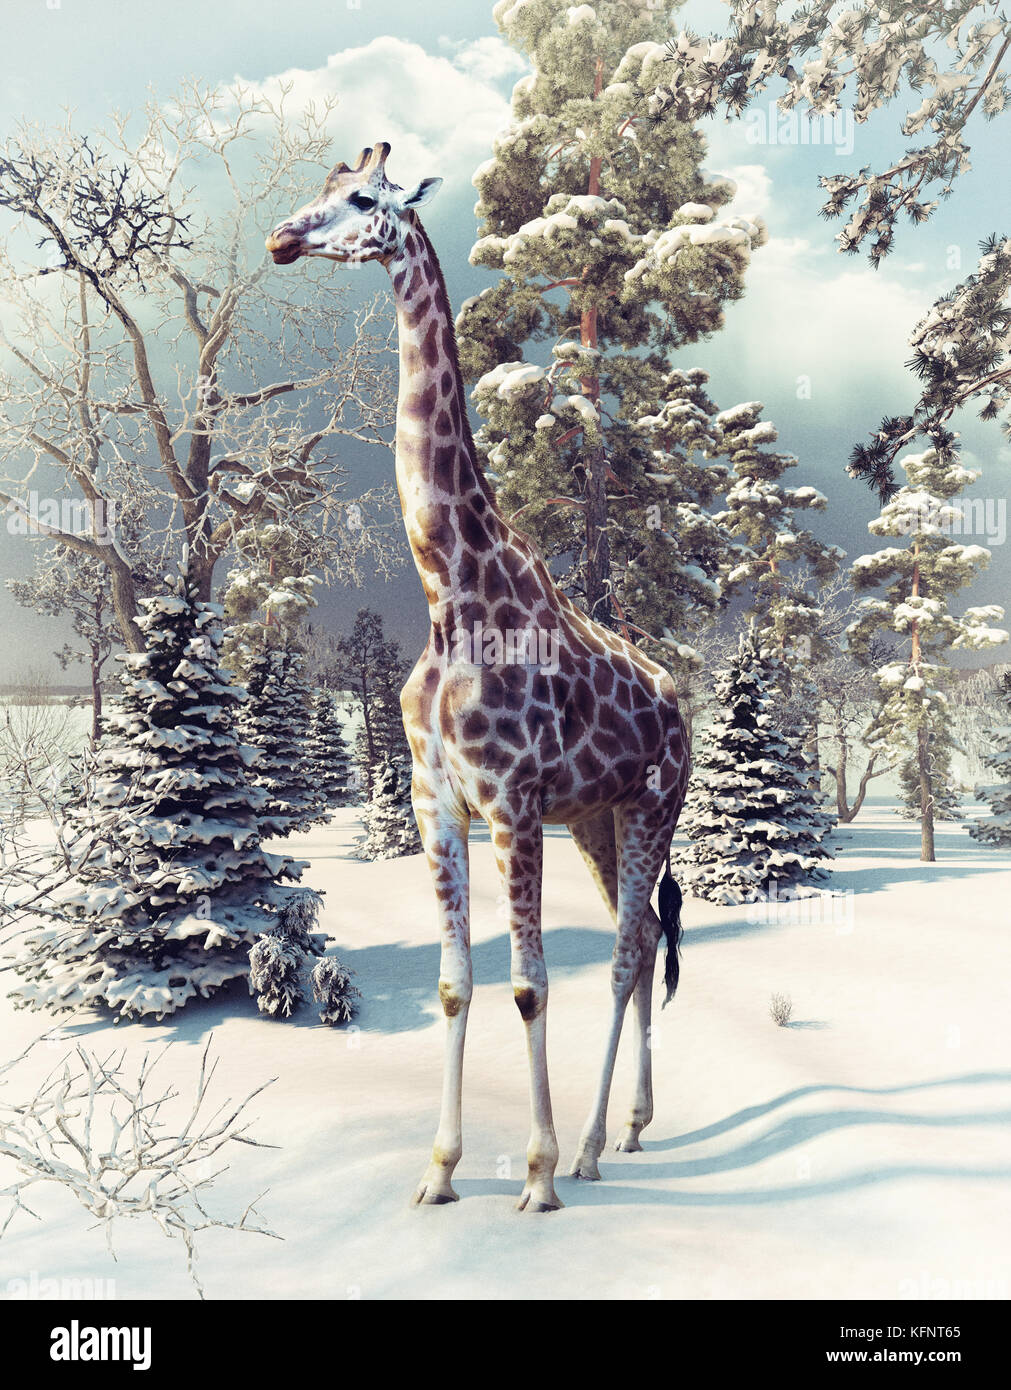 giraffe in the winter forest. 3d render elements and photo mixed. - Stock Image